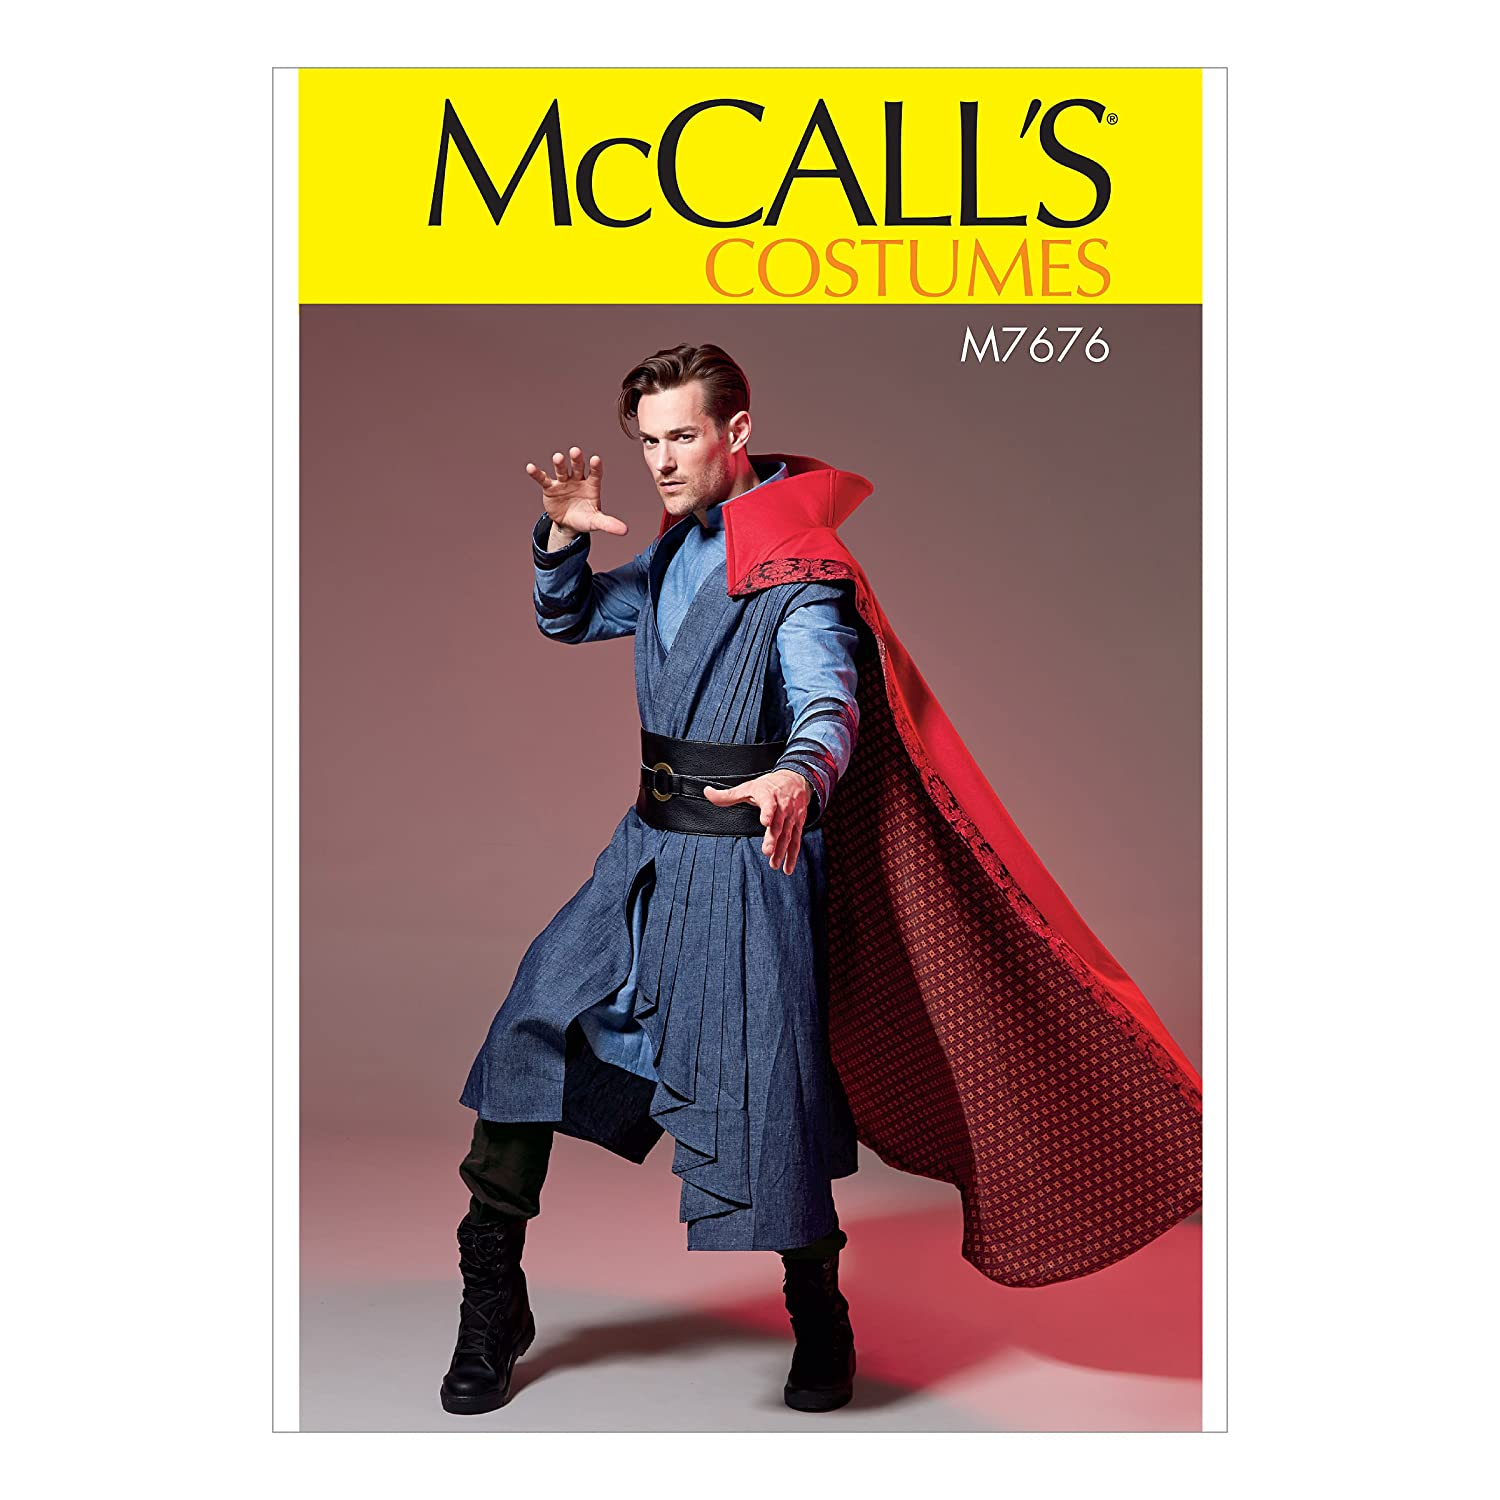 McCalls Patterns M7676 Mens Costume With Cloak and Belt SEWING PATTERN Vest Size S-XXL Tunic 7676